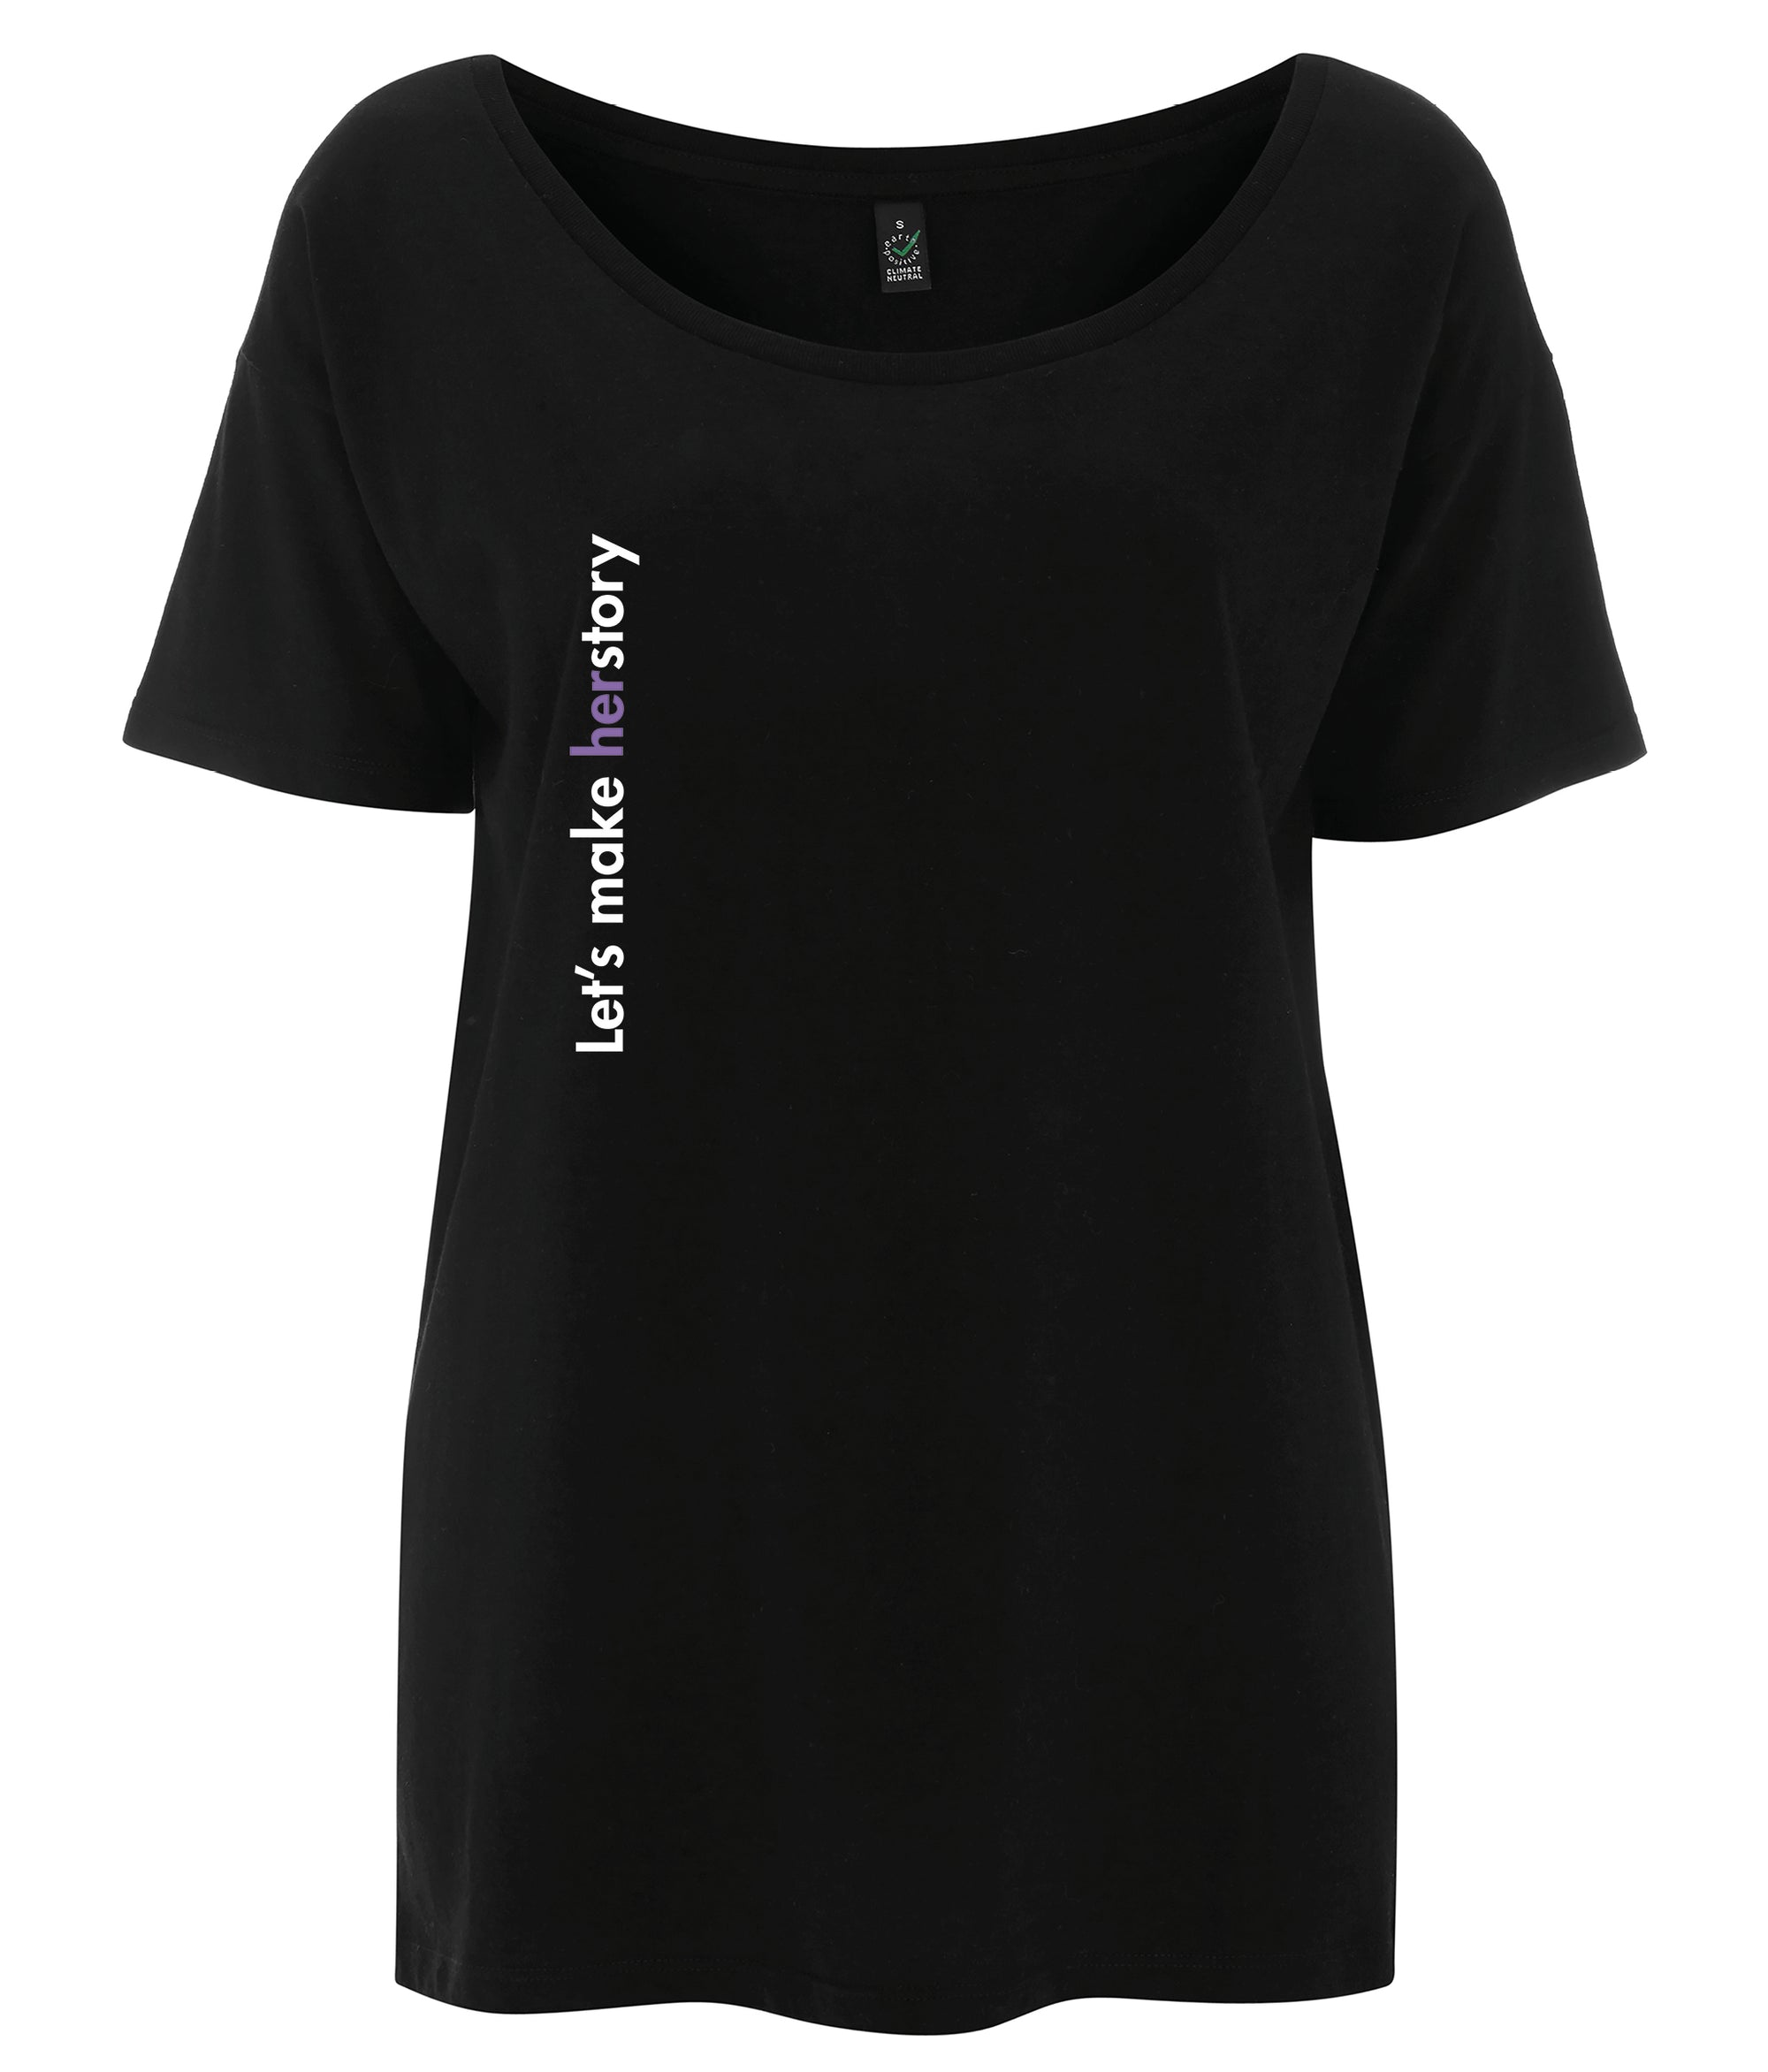 Let's Make Herstory Tencel Blend Oversized Feminist T Shirt Black